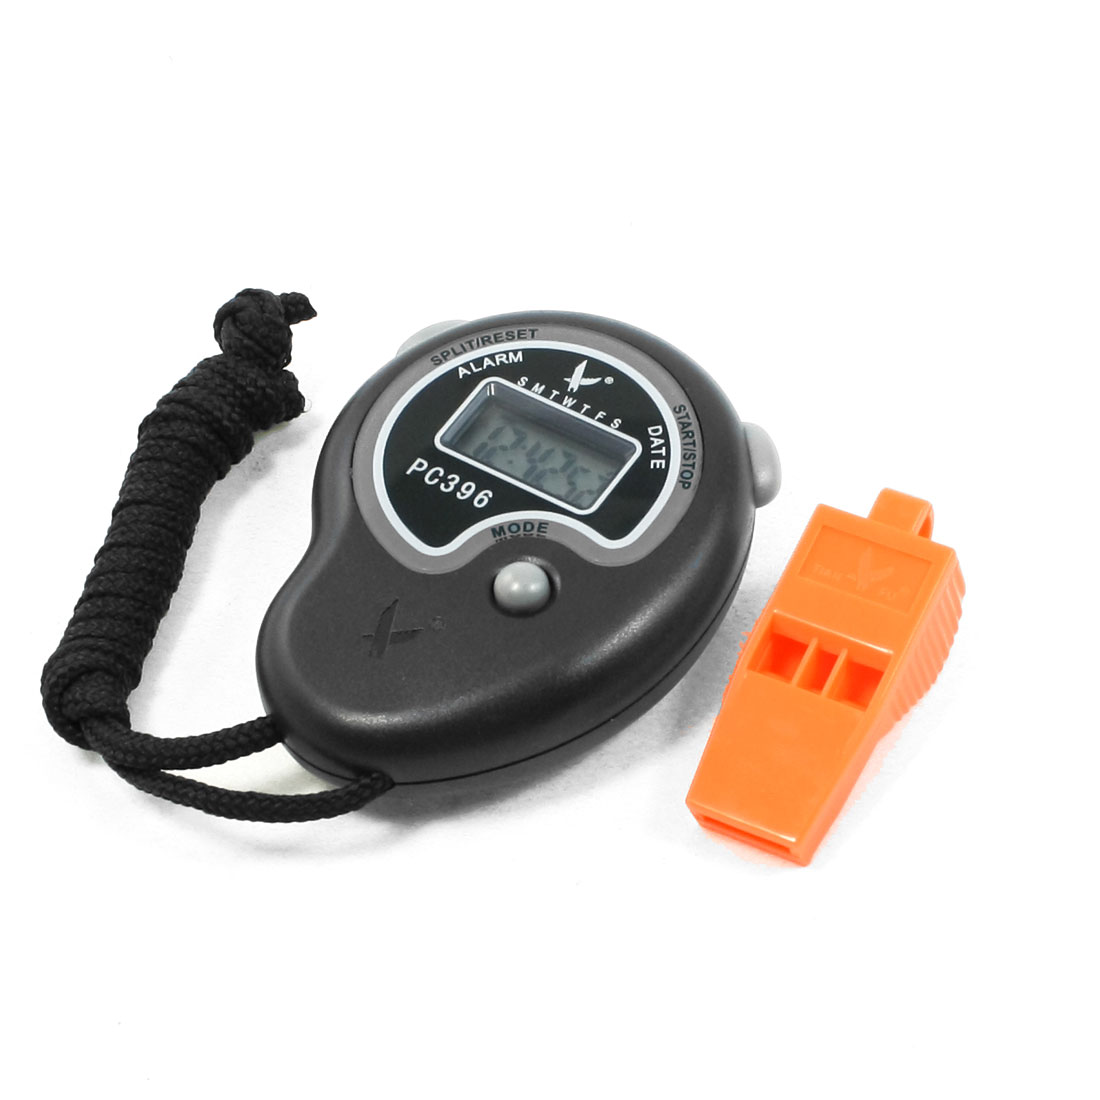 LCD Digital Timer Nylon Neck Lanyard Stop Watch Black w Orange Whistle